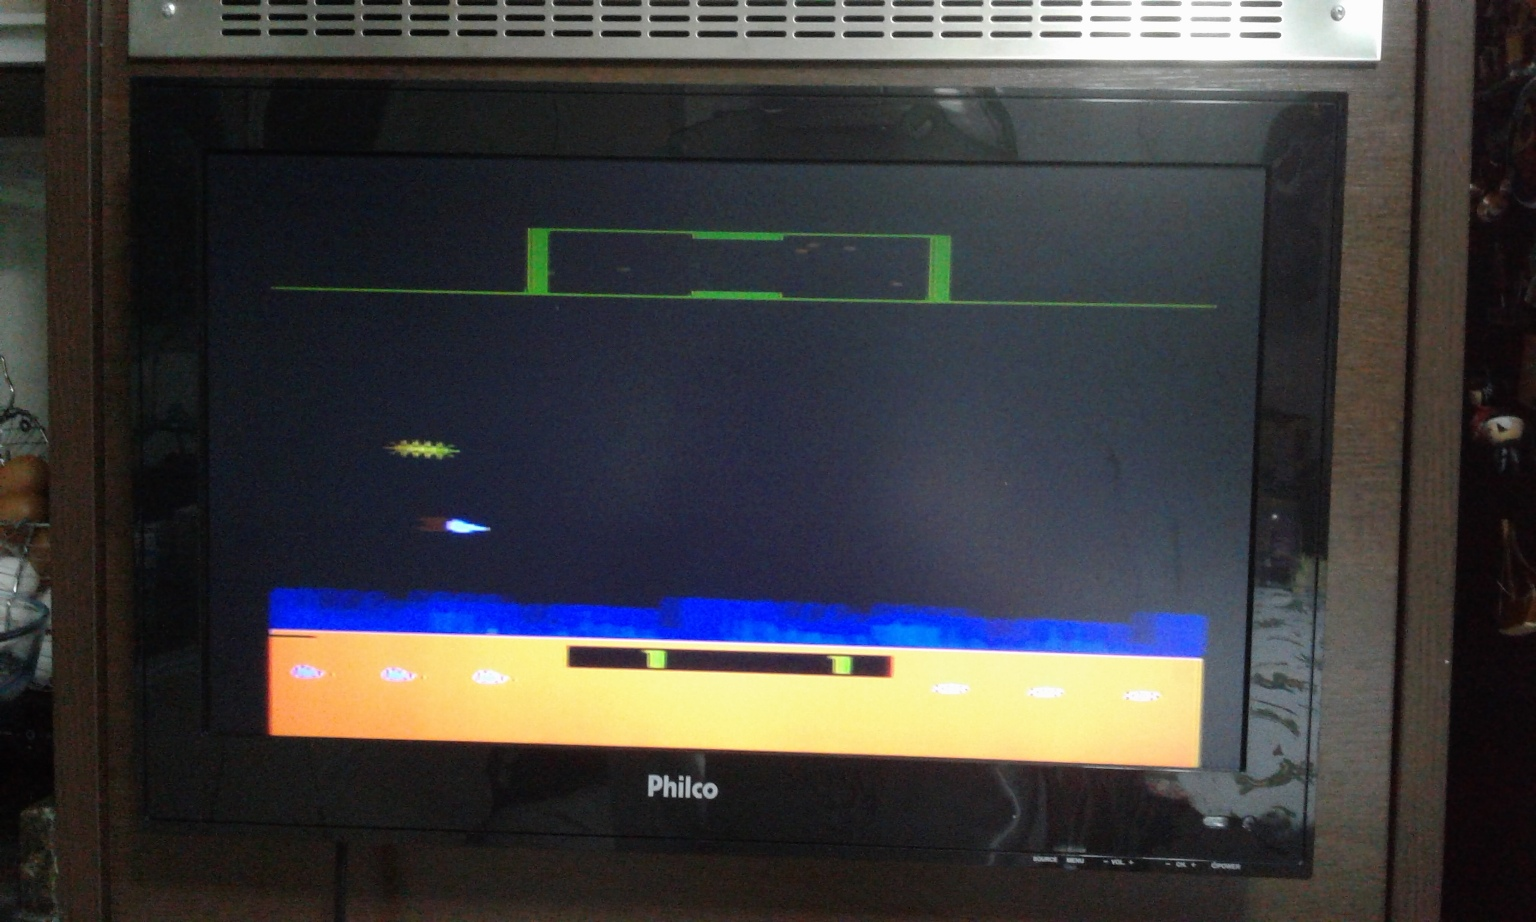 oyamafamily: Defender (Atari 2600 Expert/A) 243,000 points on 2017-01-11 18:13:41